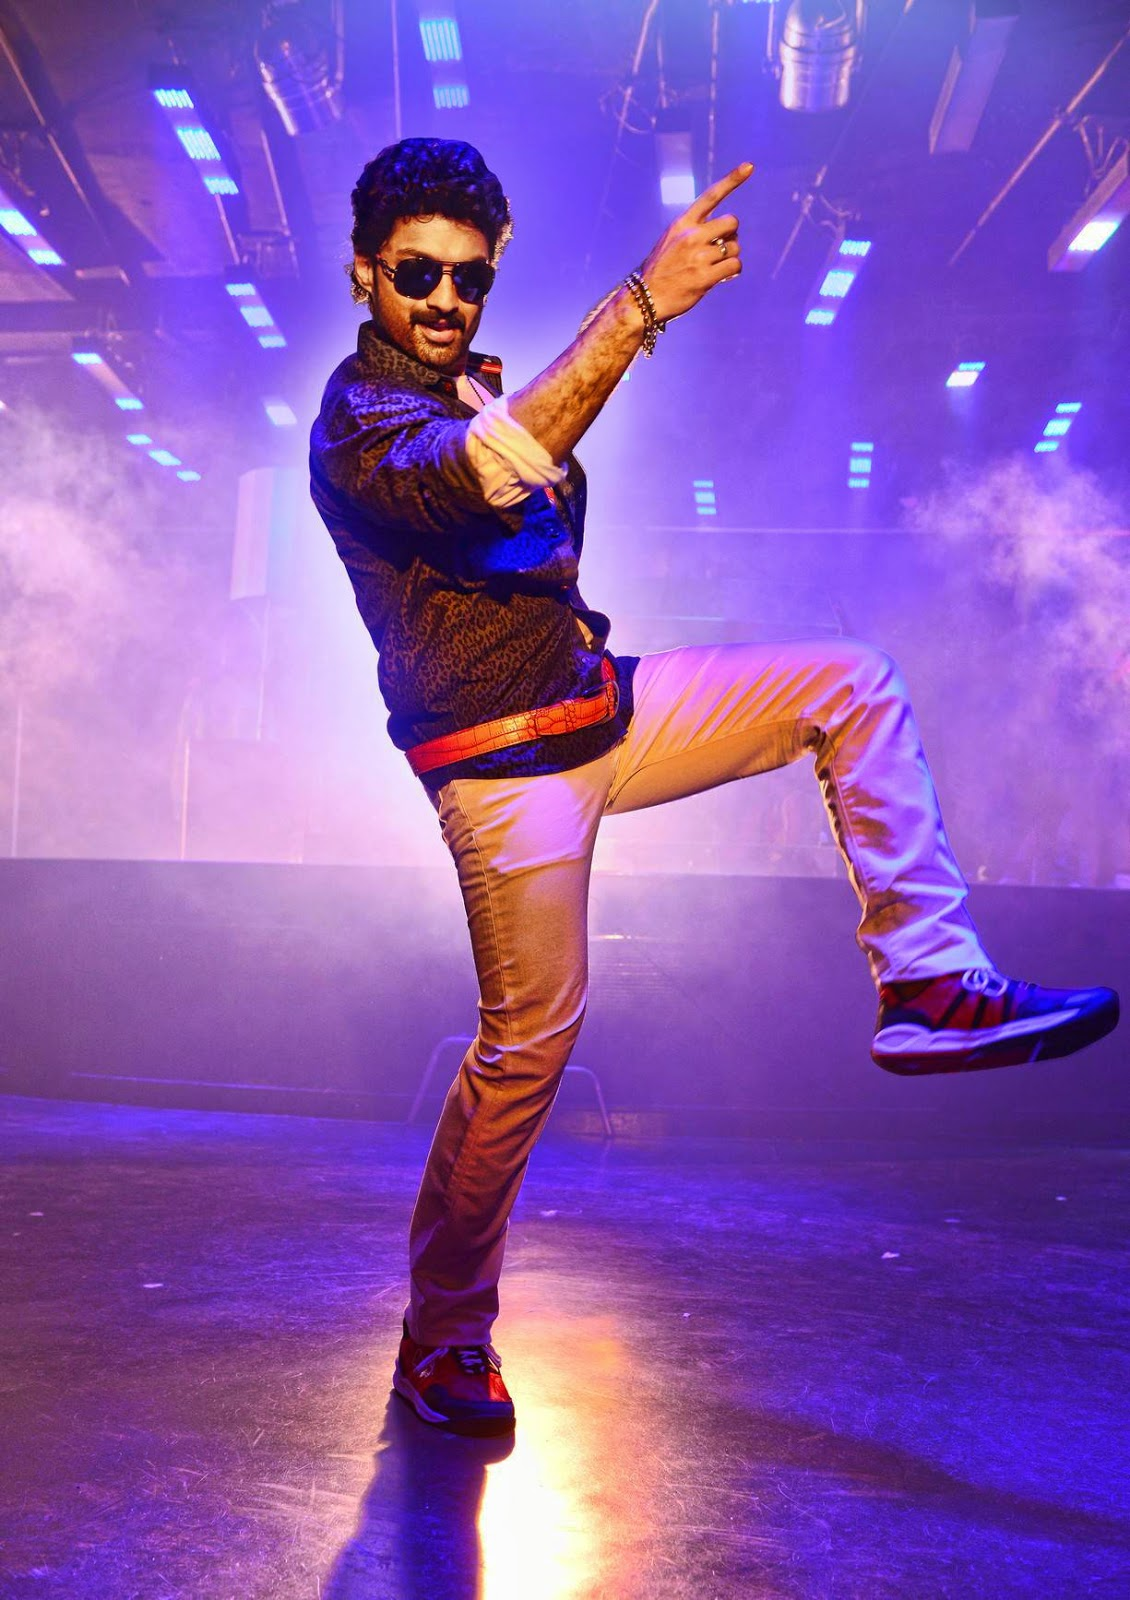 K, Kalyan Ram, Kalyan Ram Photo HD Gallery, latest HD images, Latest wallpapers, Telugu Movie actors, Tollywood, Indian Actors, Kalyan Ram Pataas Telugu Movie HD Posters